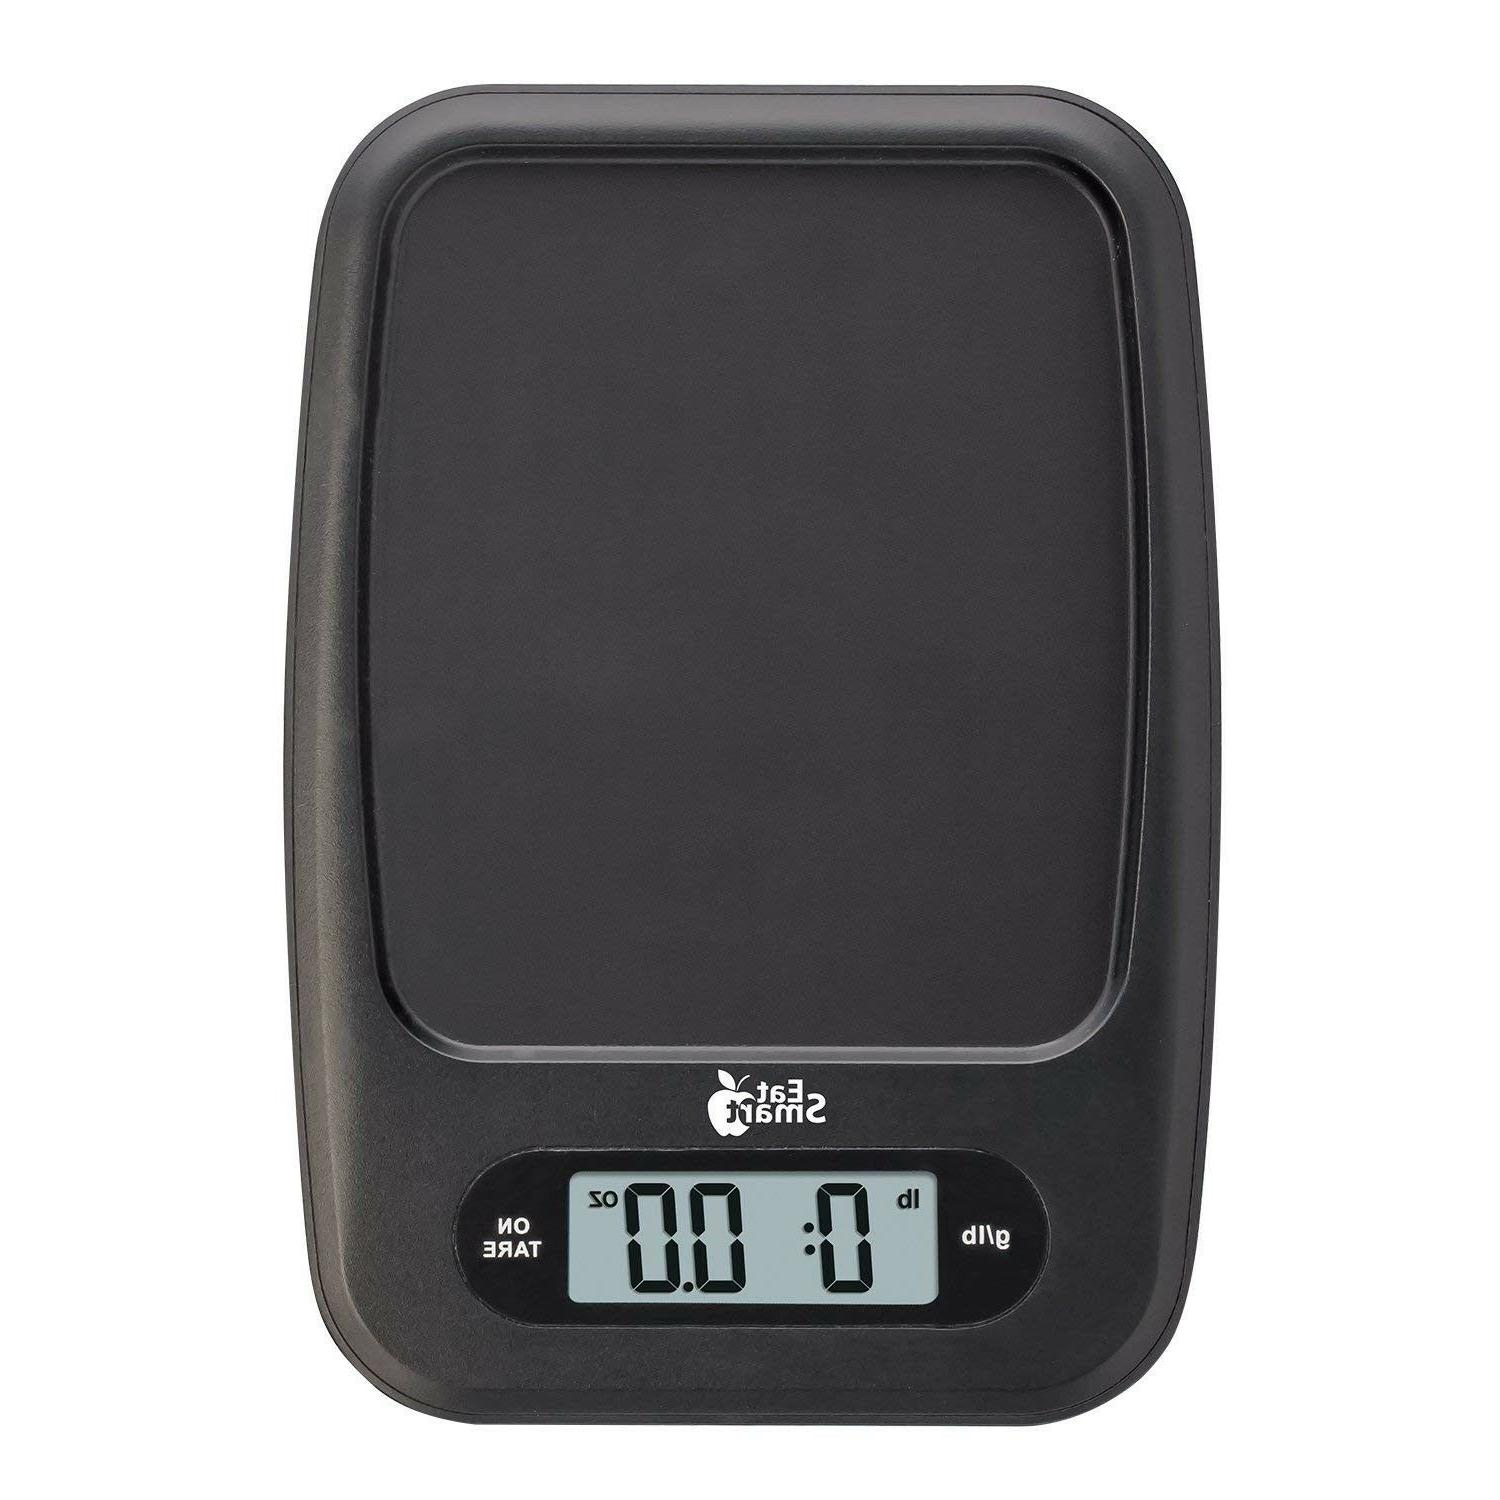 Food Small Kitchen Weighing Baking Digital Portable